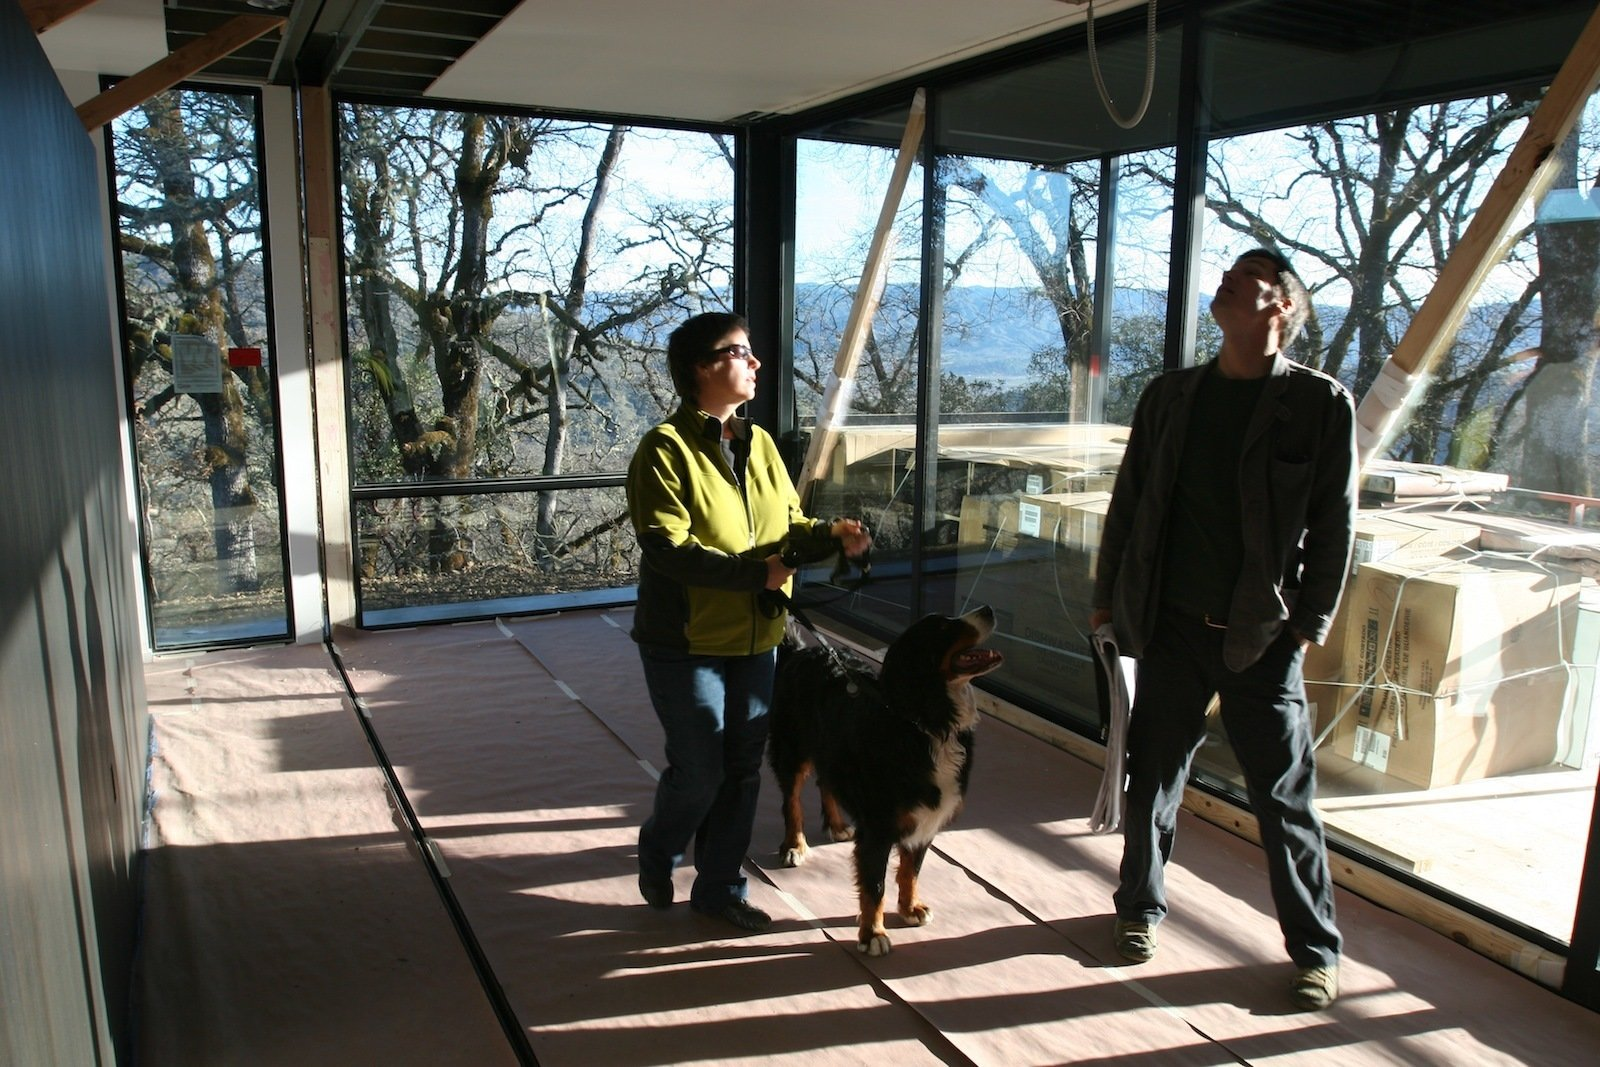 """Abbie, Stella (the Burton's other dog), and Riley, the project architect for Marmol Radziner, stand in the master bedroom, just after the last module was set. """"You can see the open drywall seam in the ceiling that will be closed up over the next six weeks,"""" Bill points out.  Building a Prefab House by Jaime Gillin"""